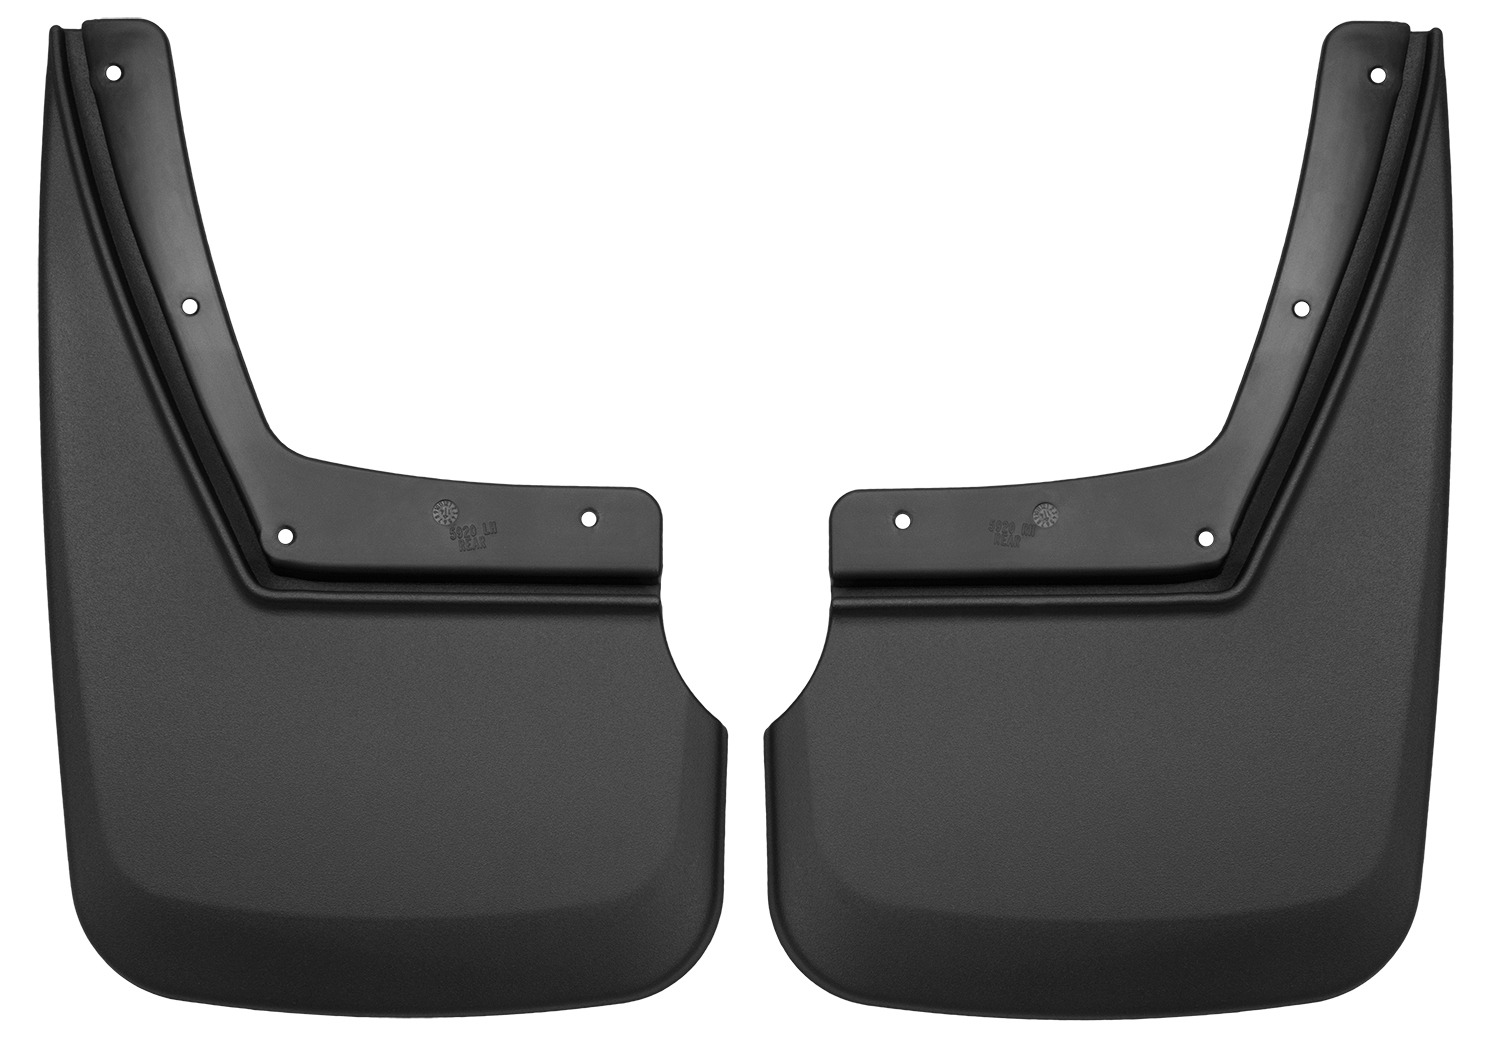 Husky Mud Flaps Rear 2015 Chevy Tahoe Jd Supply Llc View The Full Image